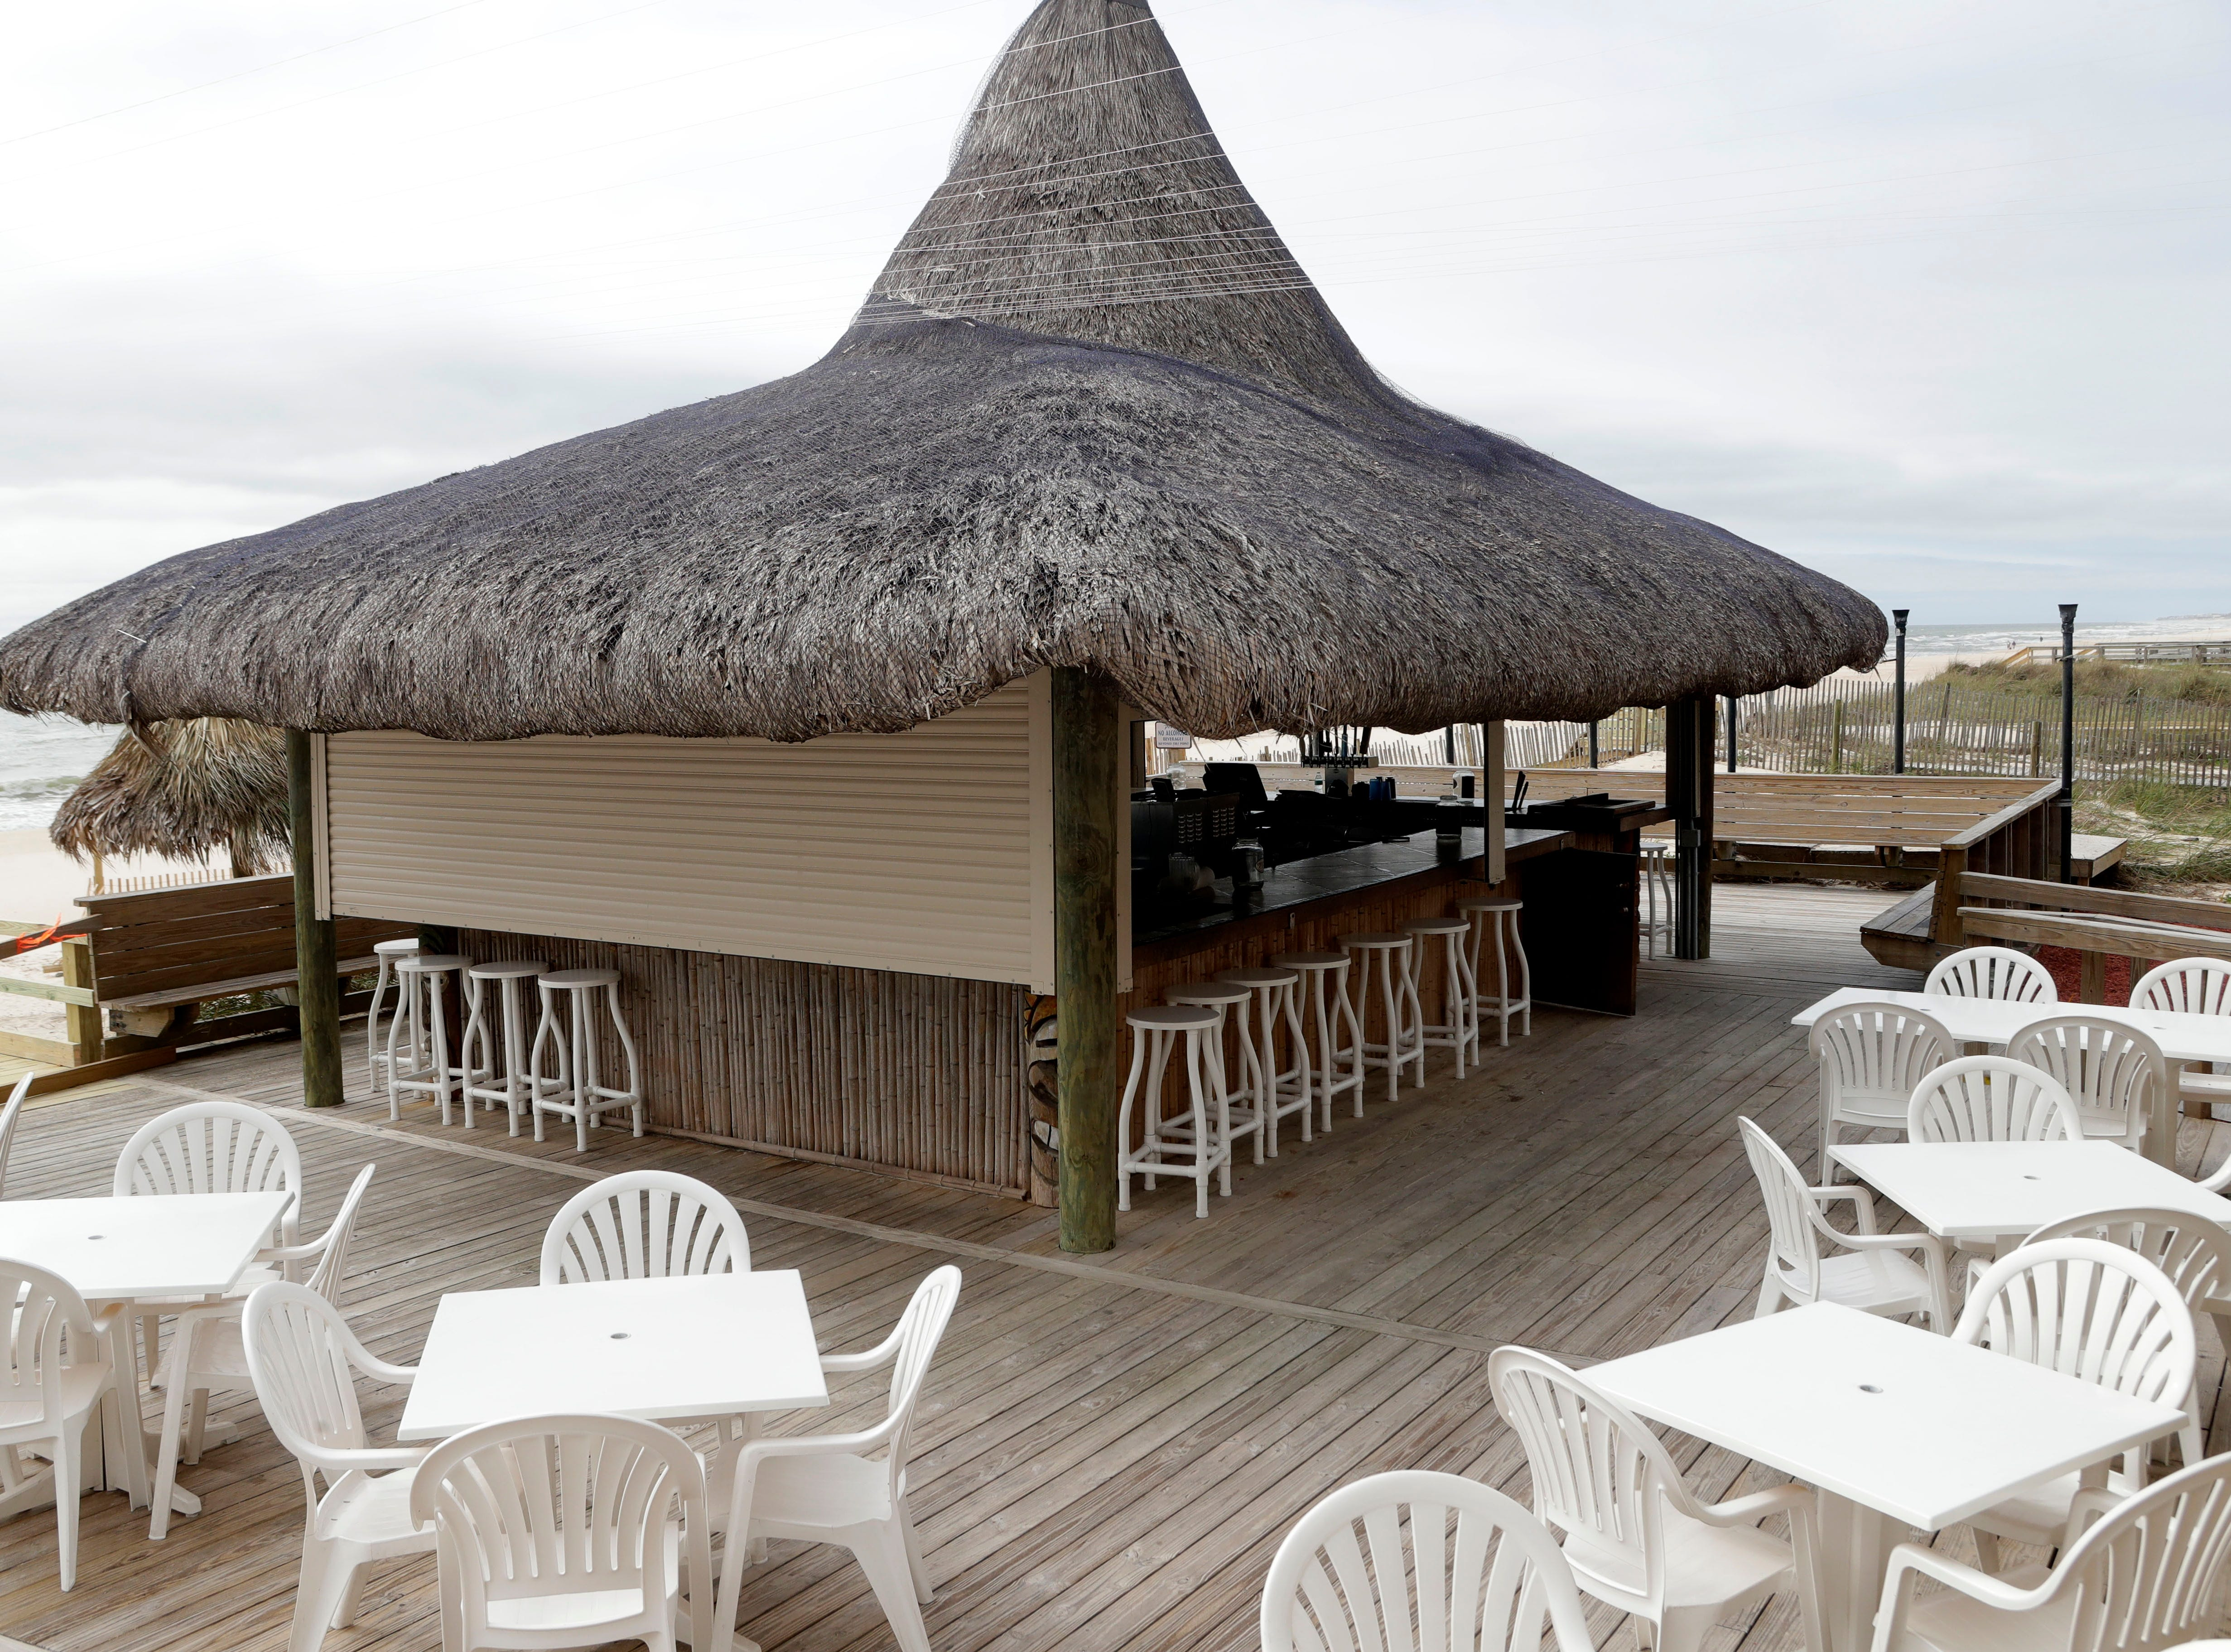 The tiki bar at Blue Parrot Ocean Front Cafe on St. George Island, Fla., looks just how it did before Hurricane Michael hit 5 months prior.